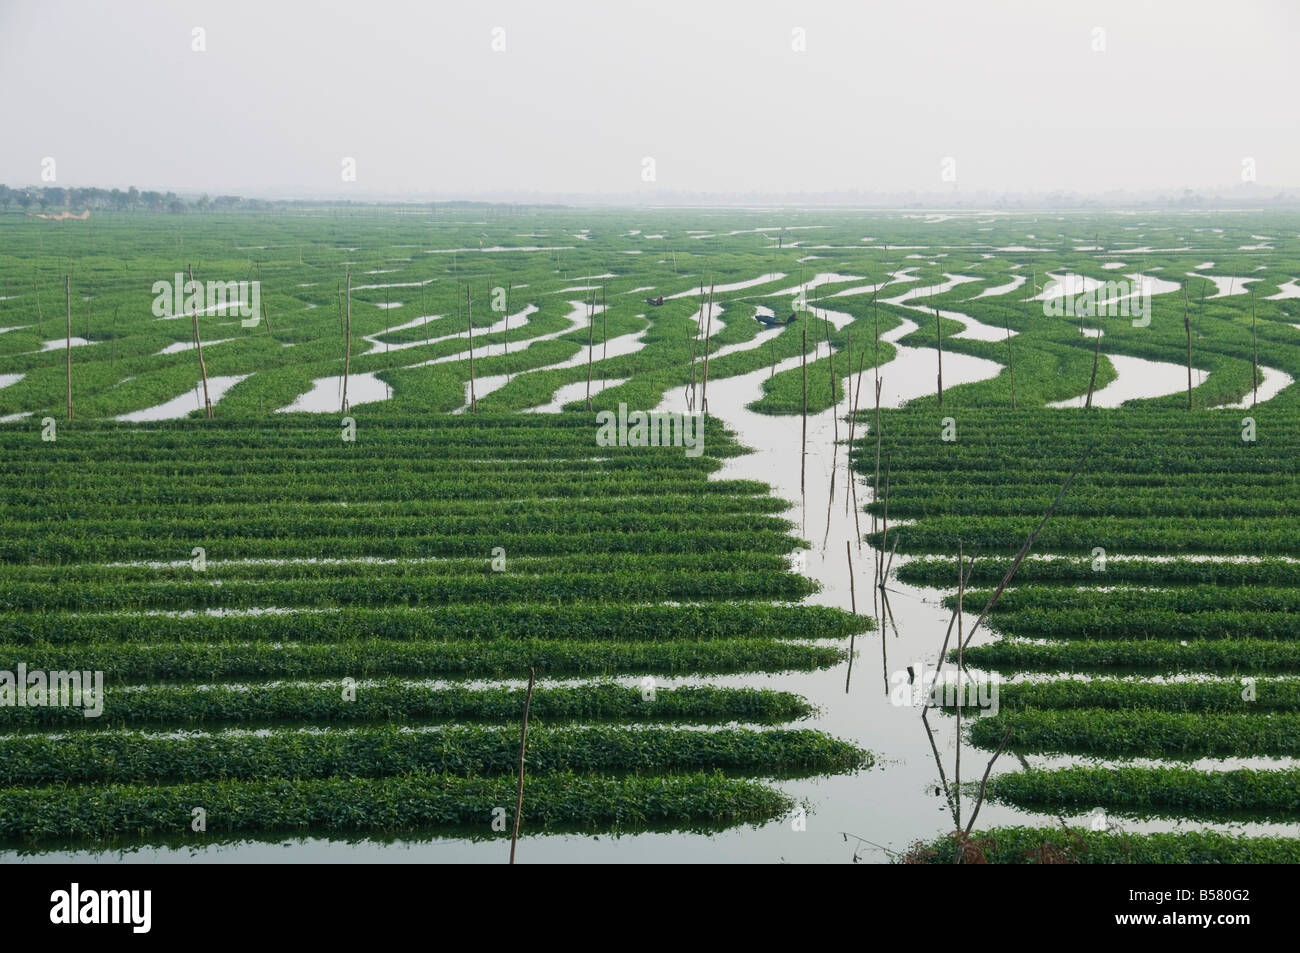 Morning glory grown for food, Phnom Penh, Cambodia, Indochina, Southeast Asia, Asia - Stock Image